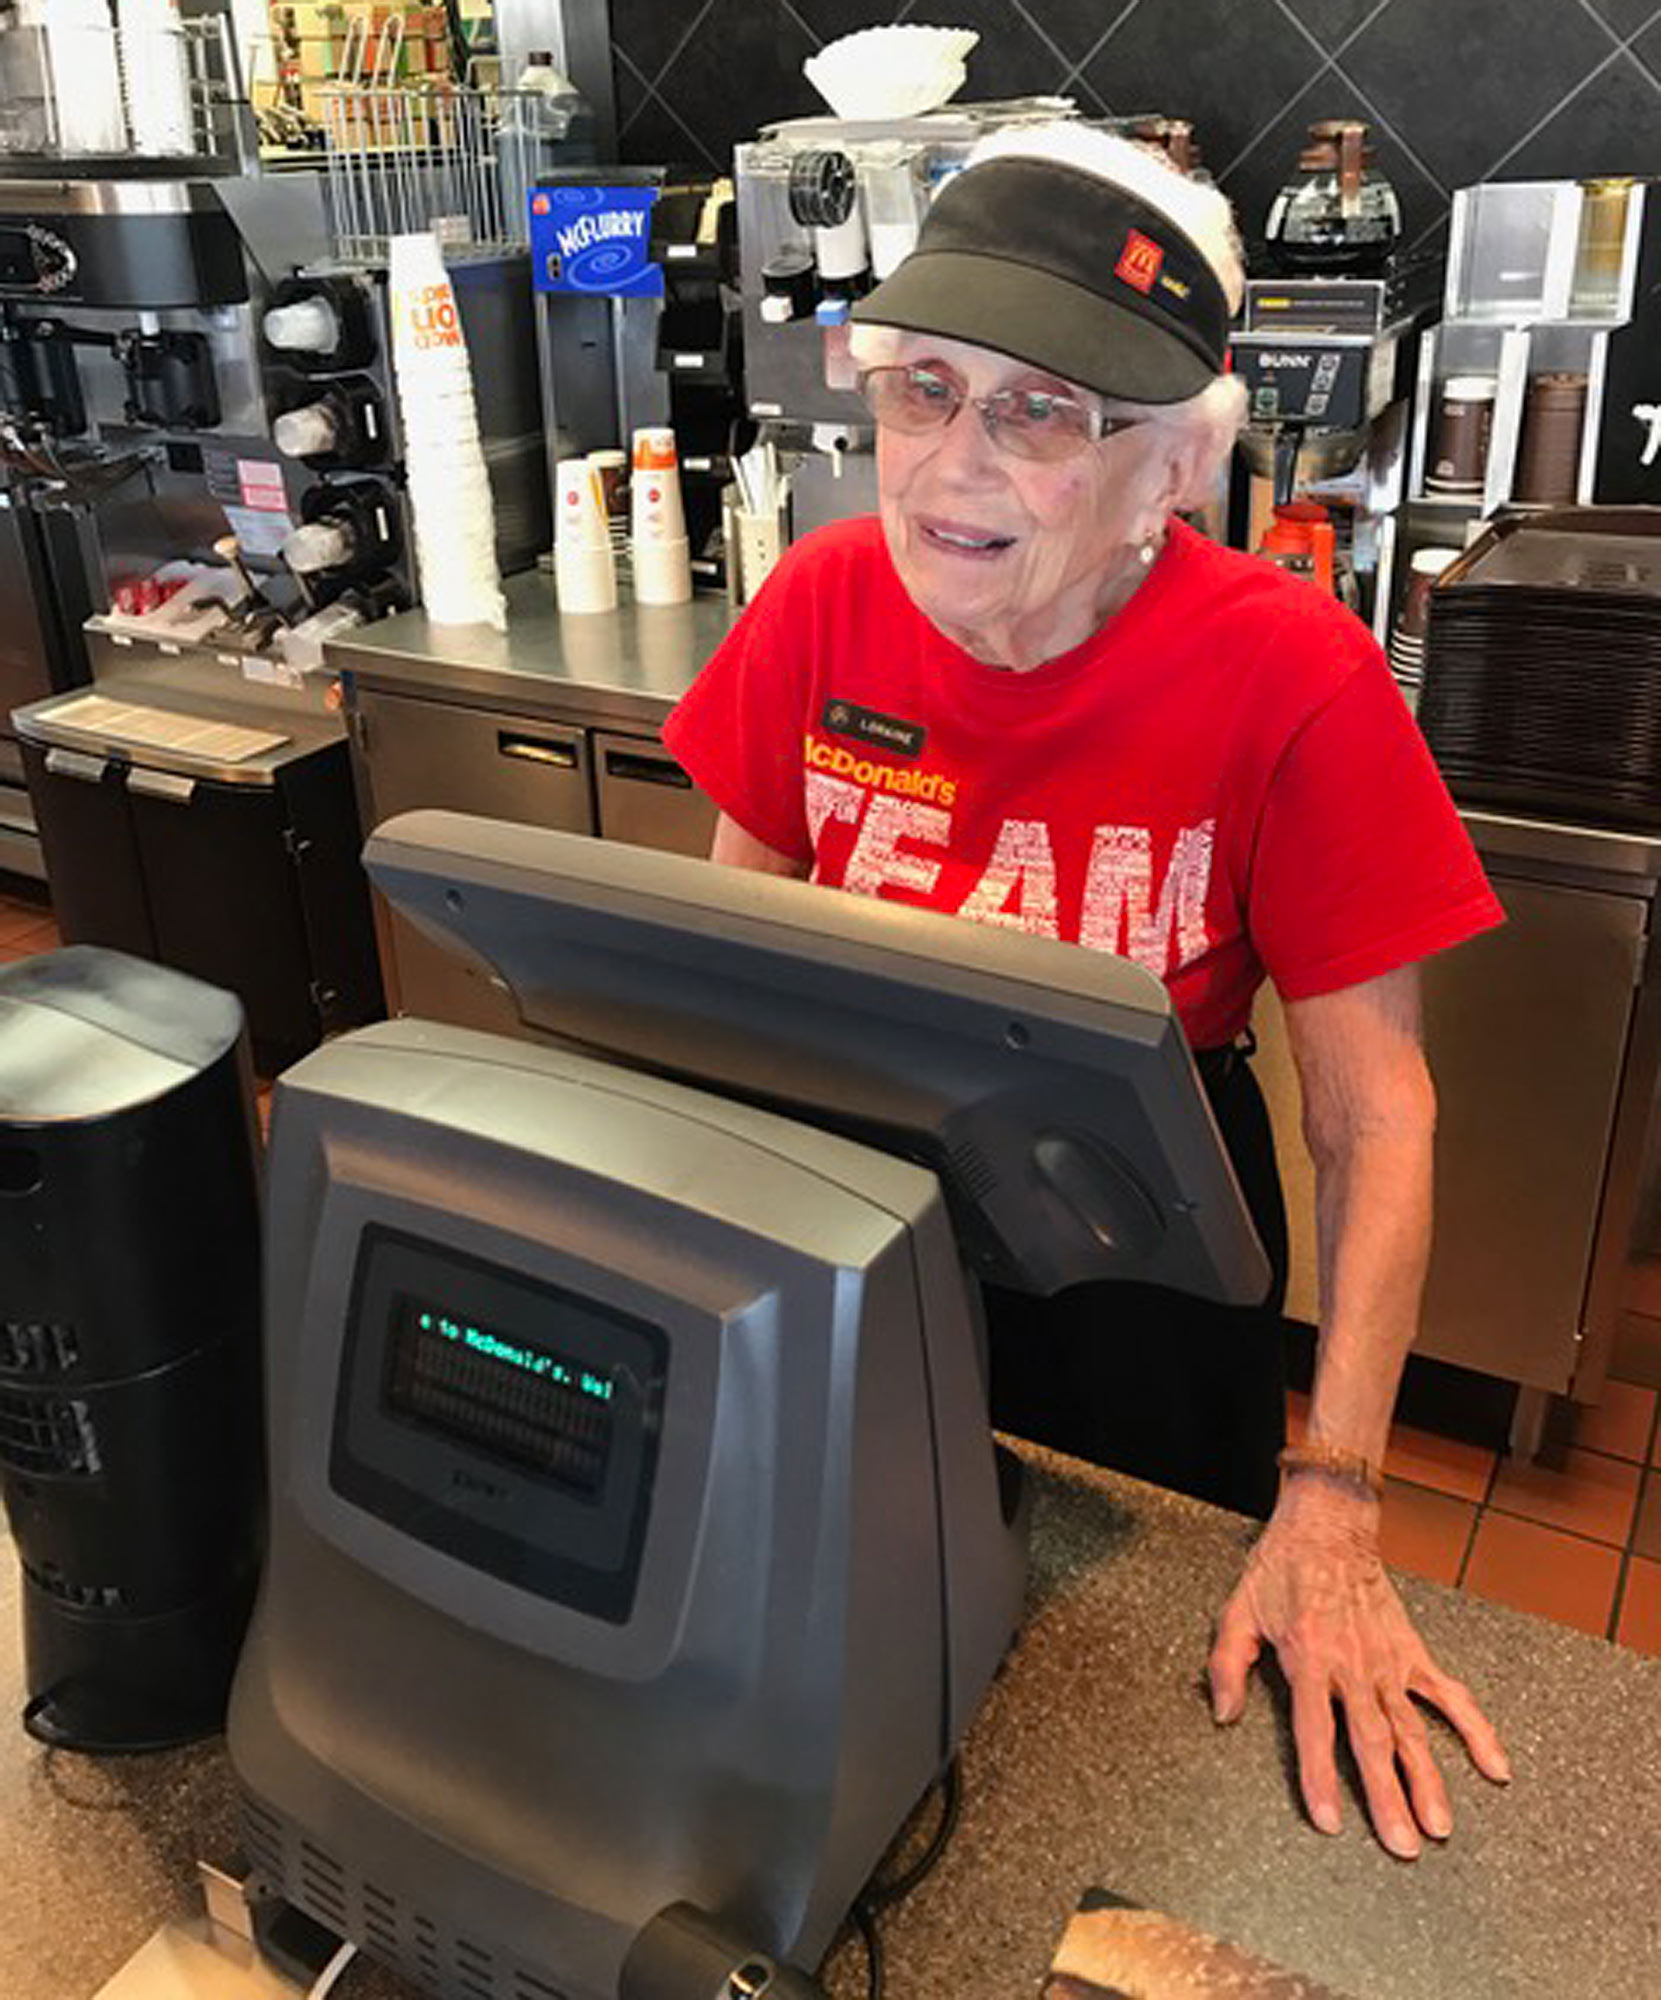 94-Year-Old Woman Has Worked at McDonald's for 44 Years — and She Eats It Every Shift